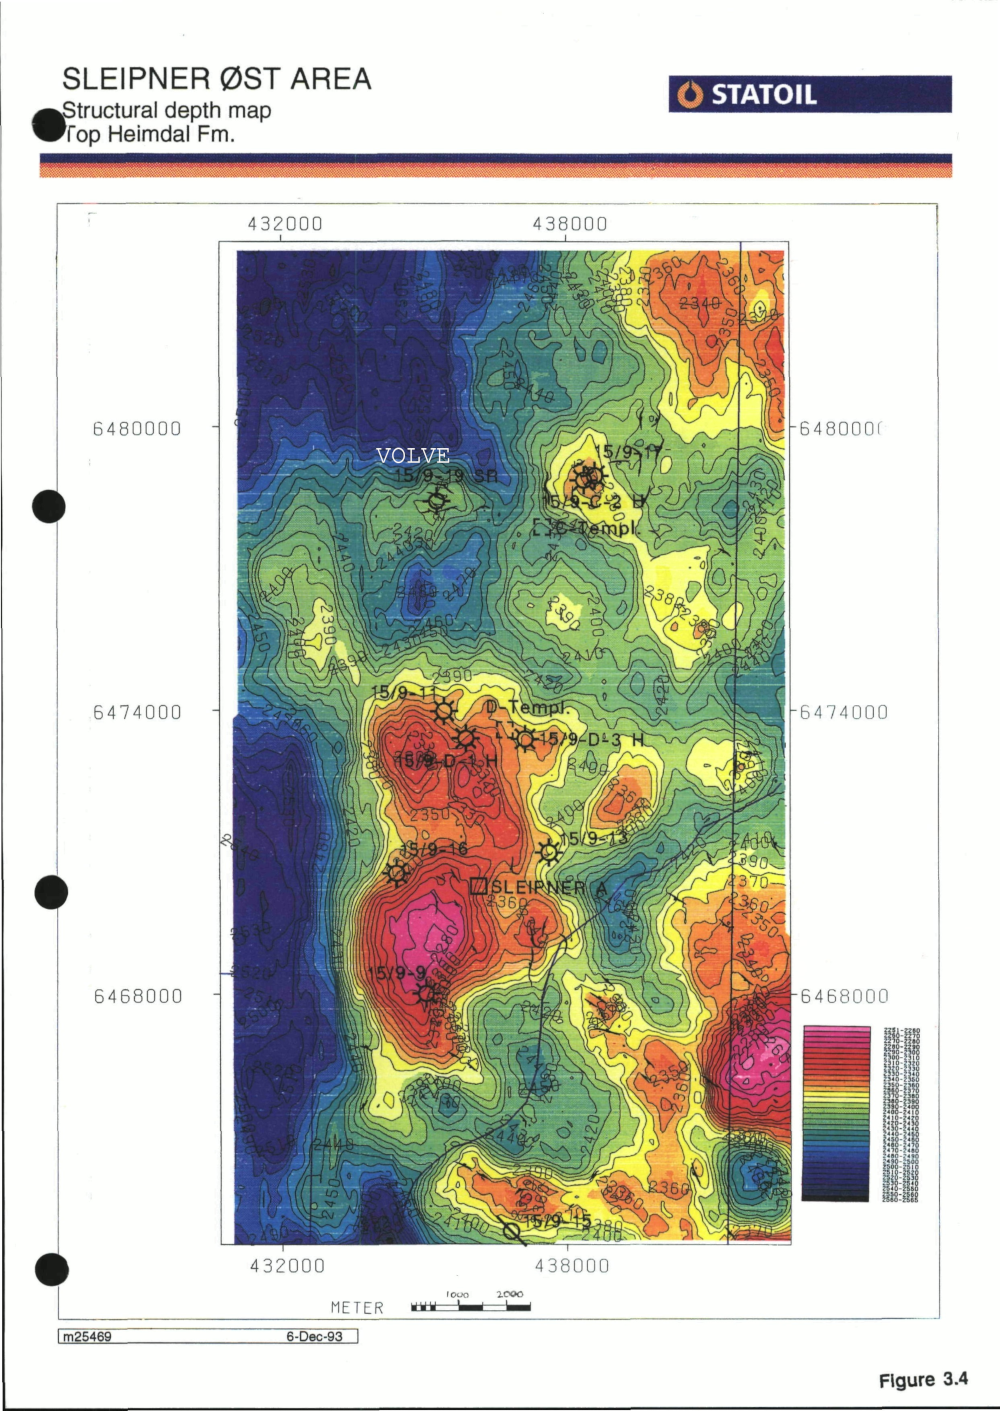 The top reservoir depth map from the discovery report. The Volve field (my label) is the small closure directly north of Sleipner East, with 15/9-19 well on it.